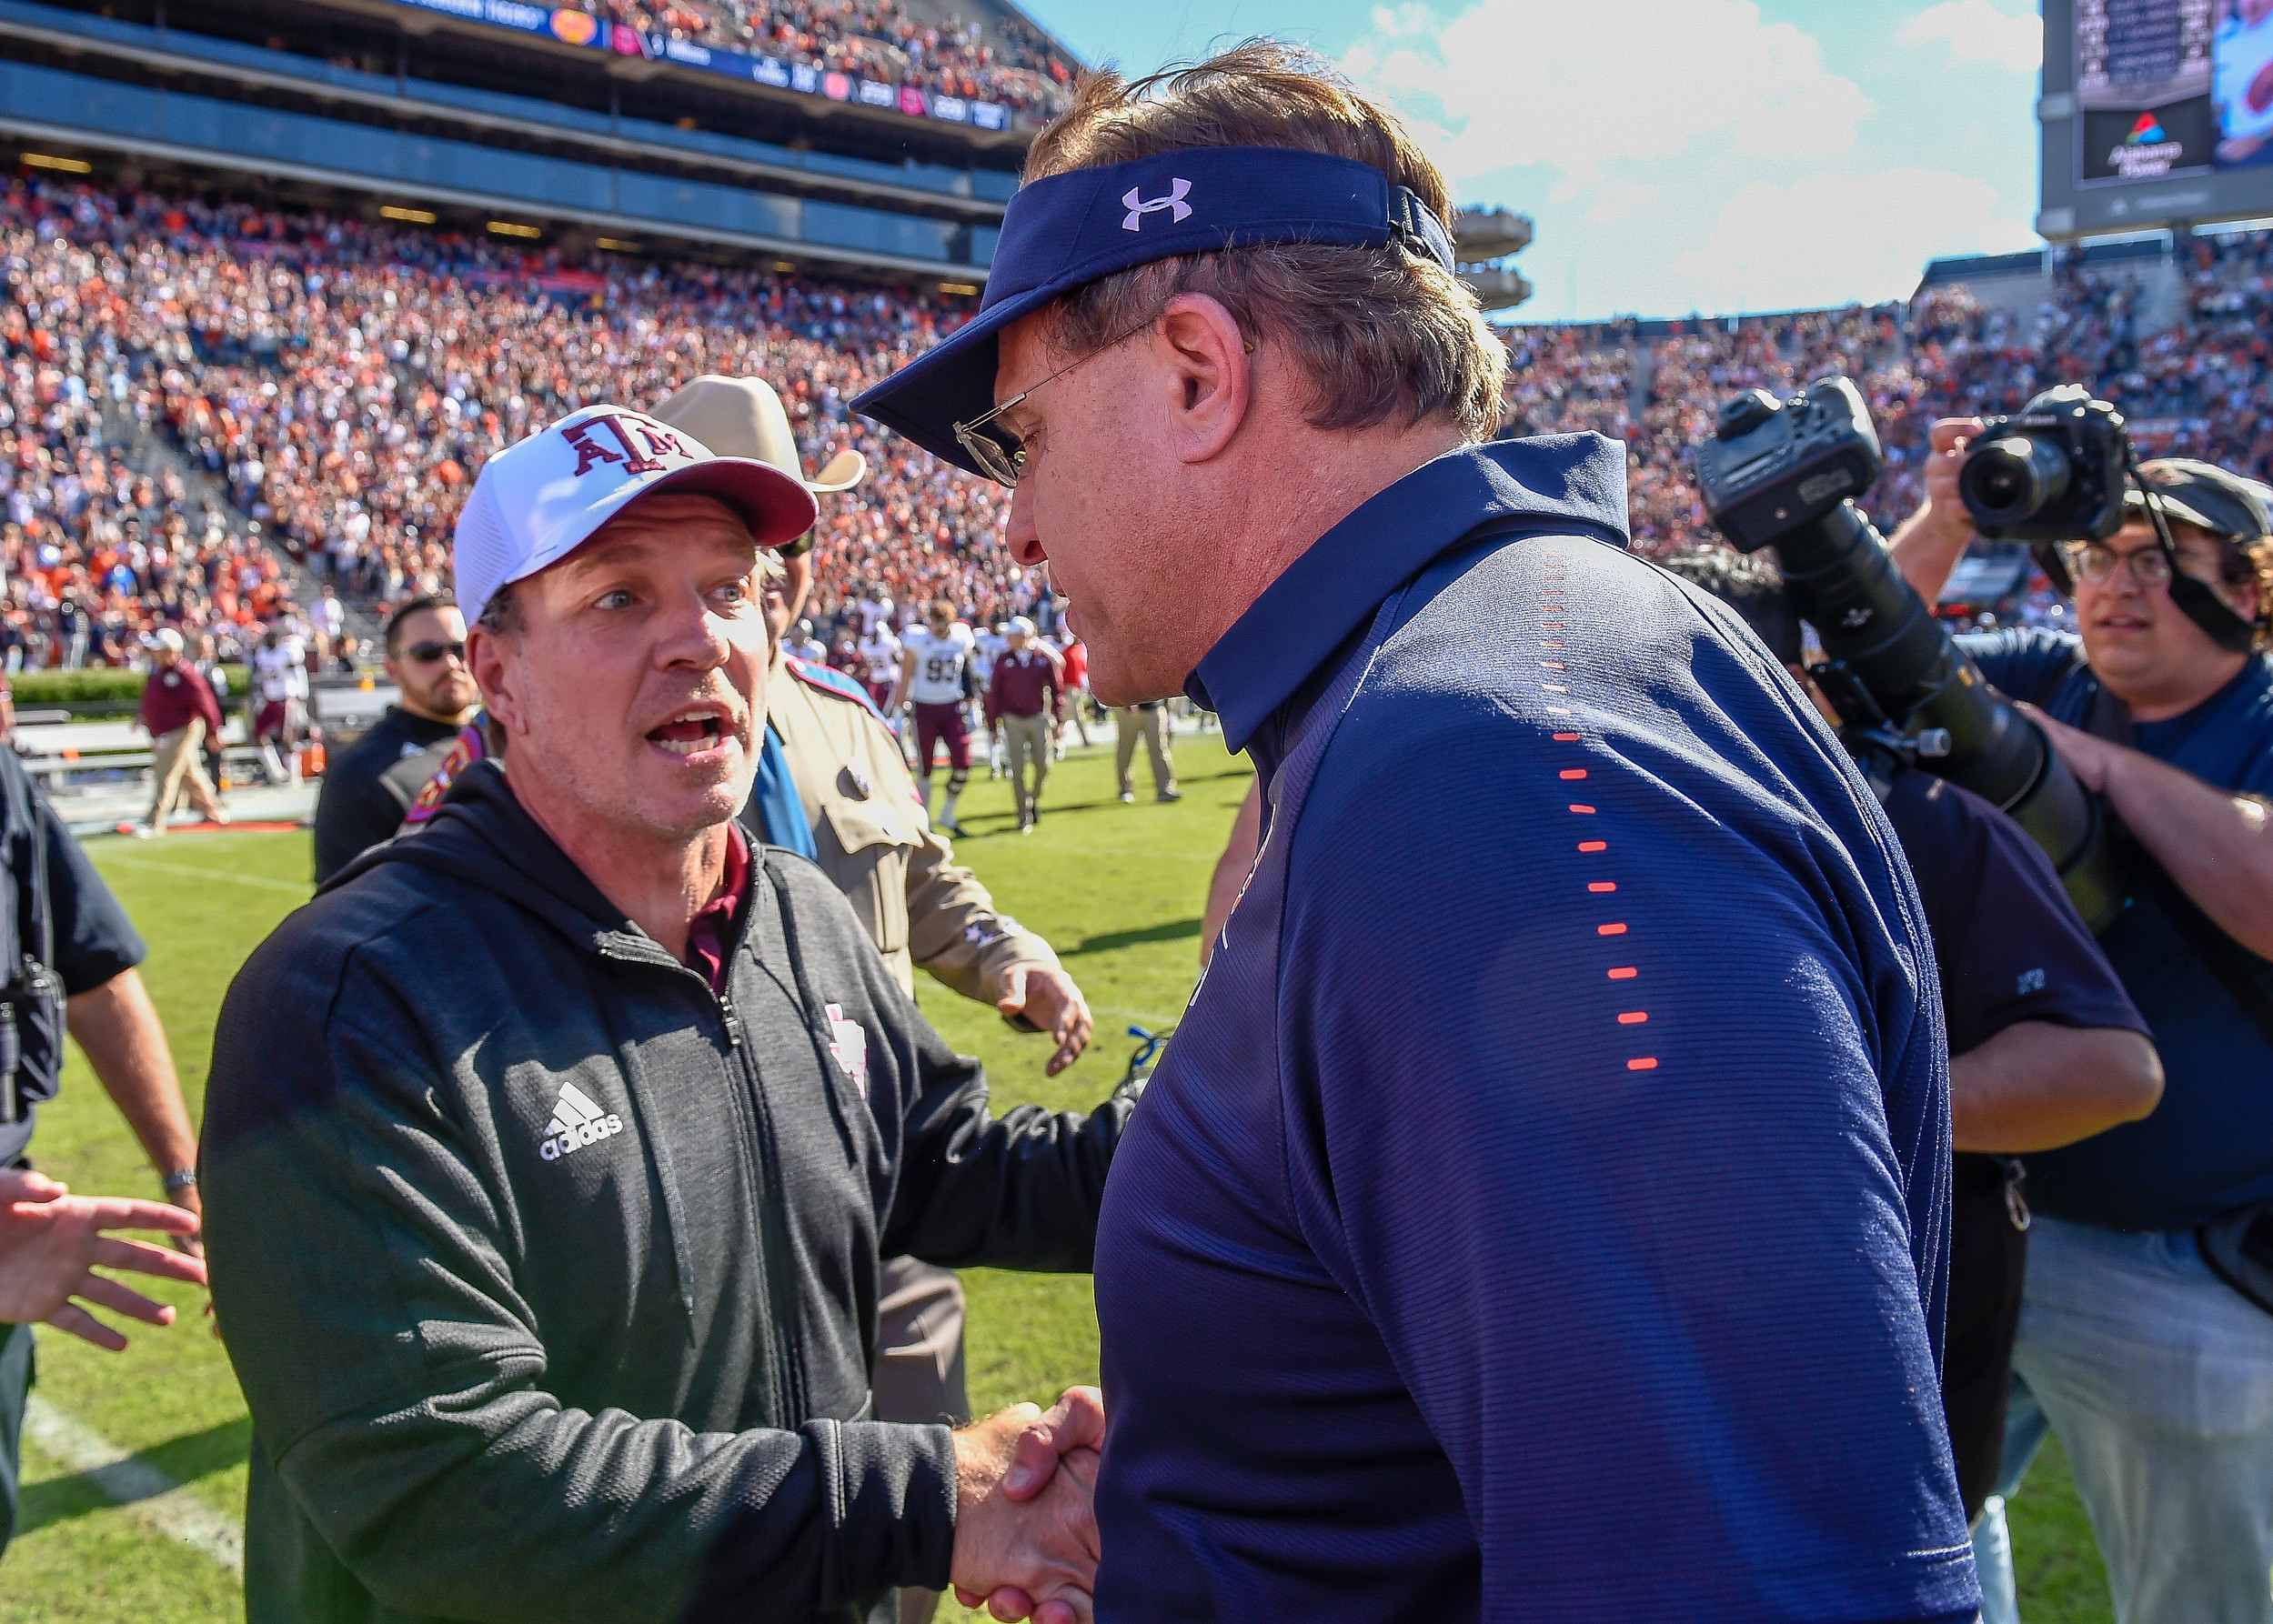 Texas A&M Aggies head coach Jimbo Fisher and Auburn Tigers head coach Gus Malzahn shake hands after an NCAA football game Saturday, November 3, 2018, at Jordan-Hare Stadium in Auburn, Ala. (Photo by Jeff Johnsey)